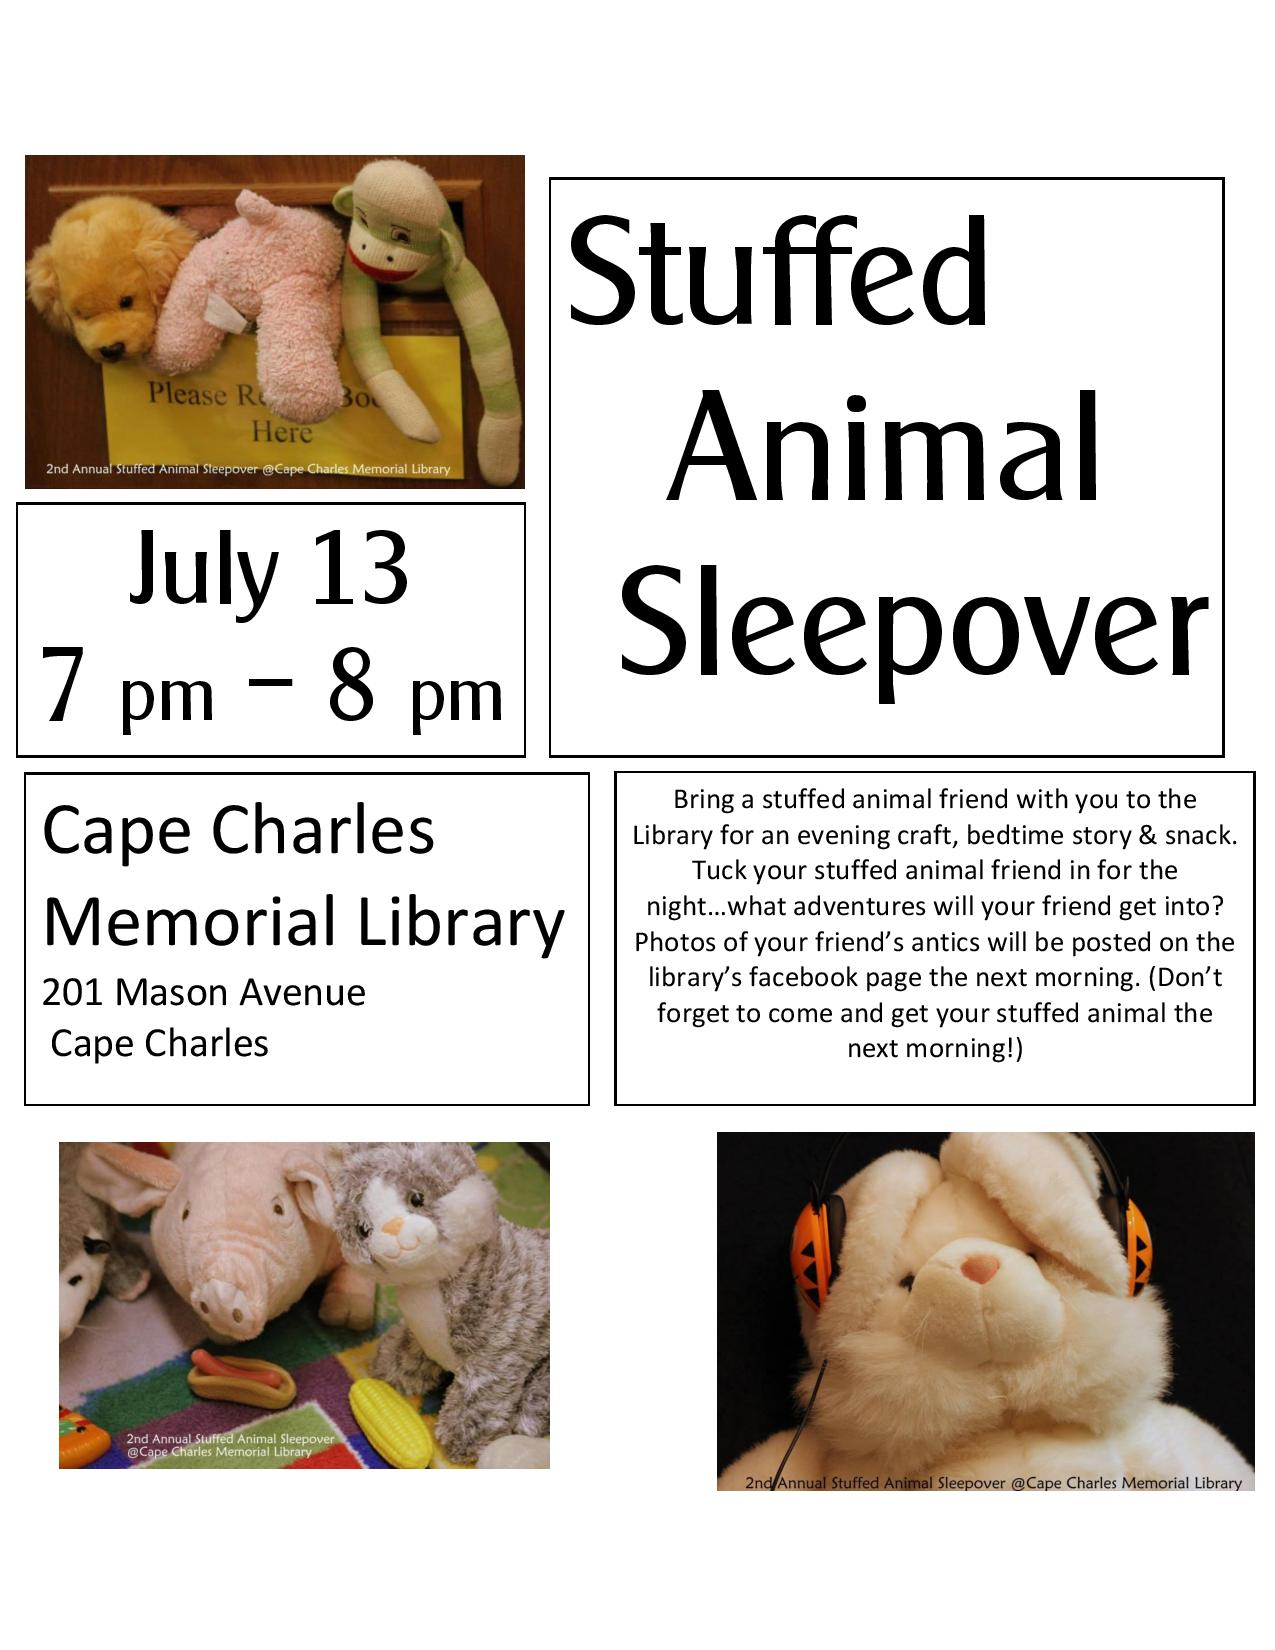 Stuffed Animal Sleepover @ Cape Charles Memorial Library